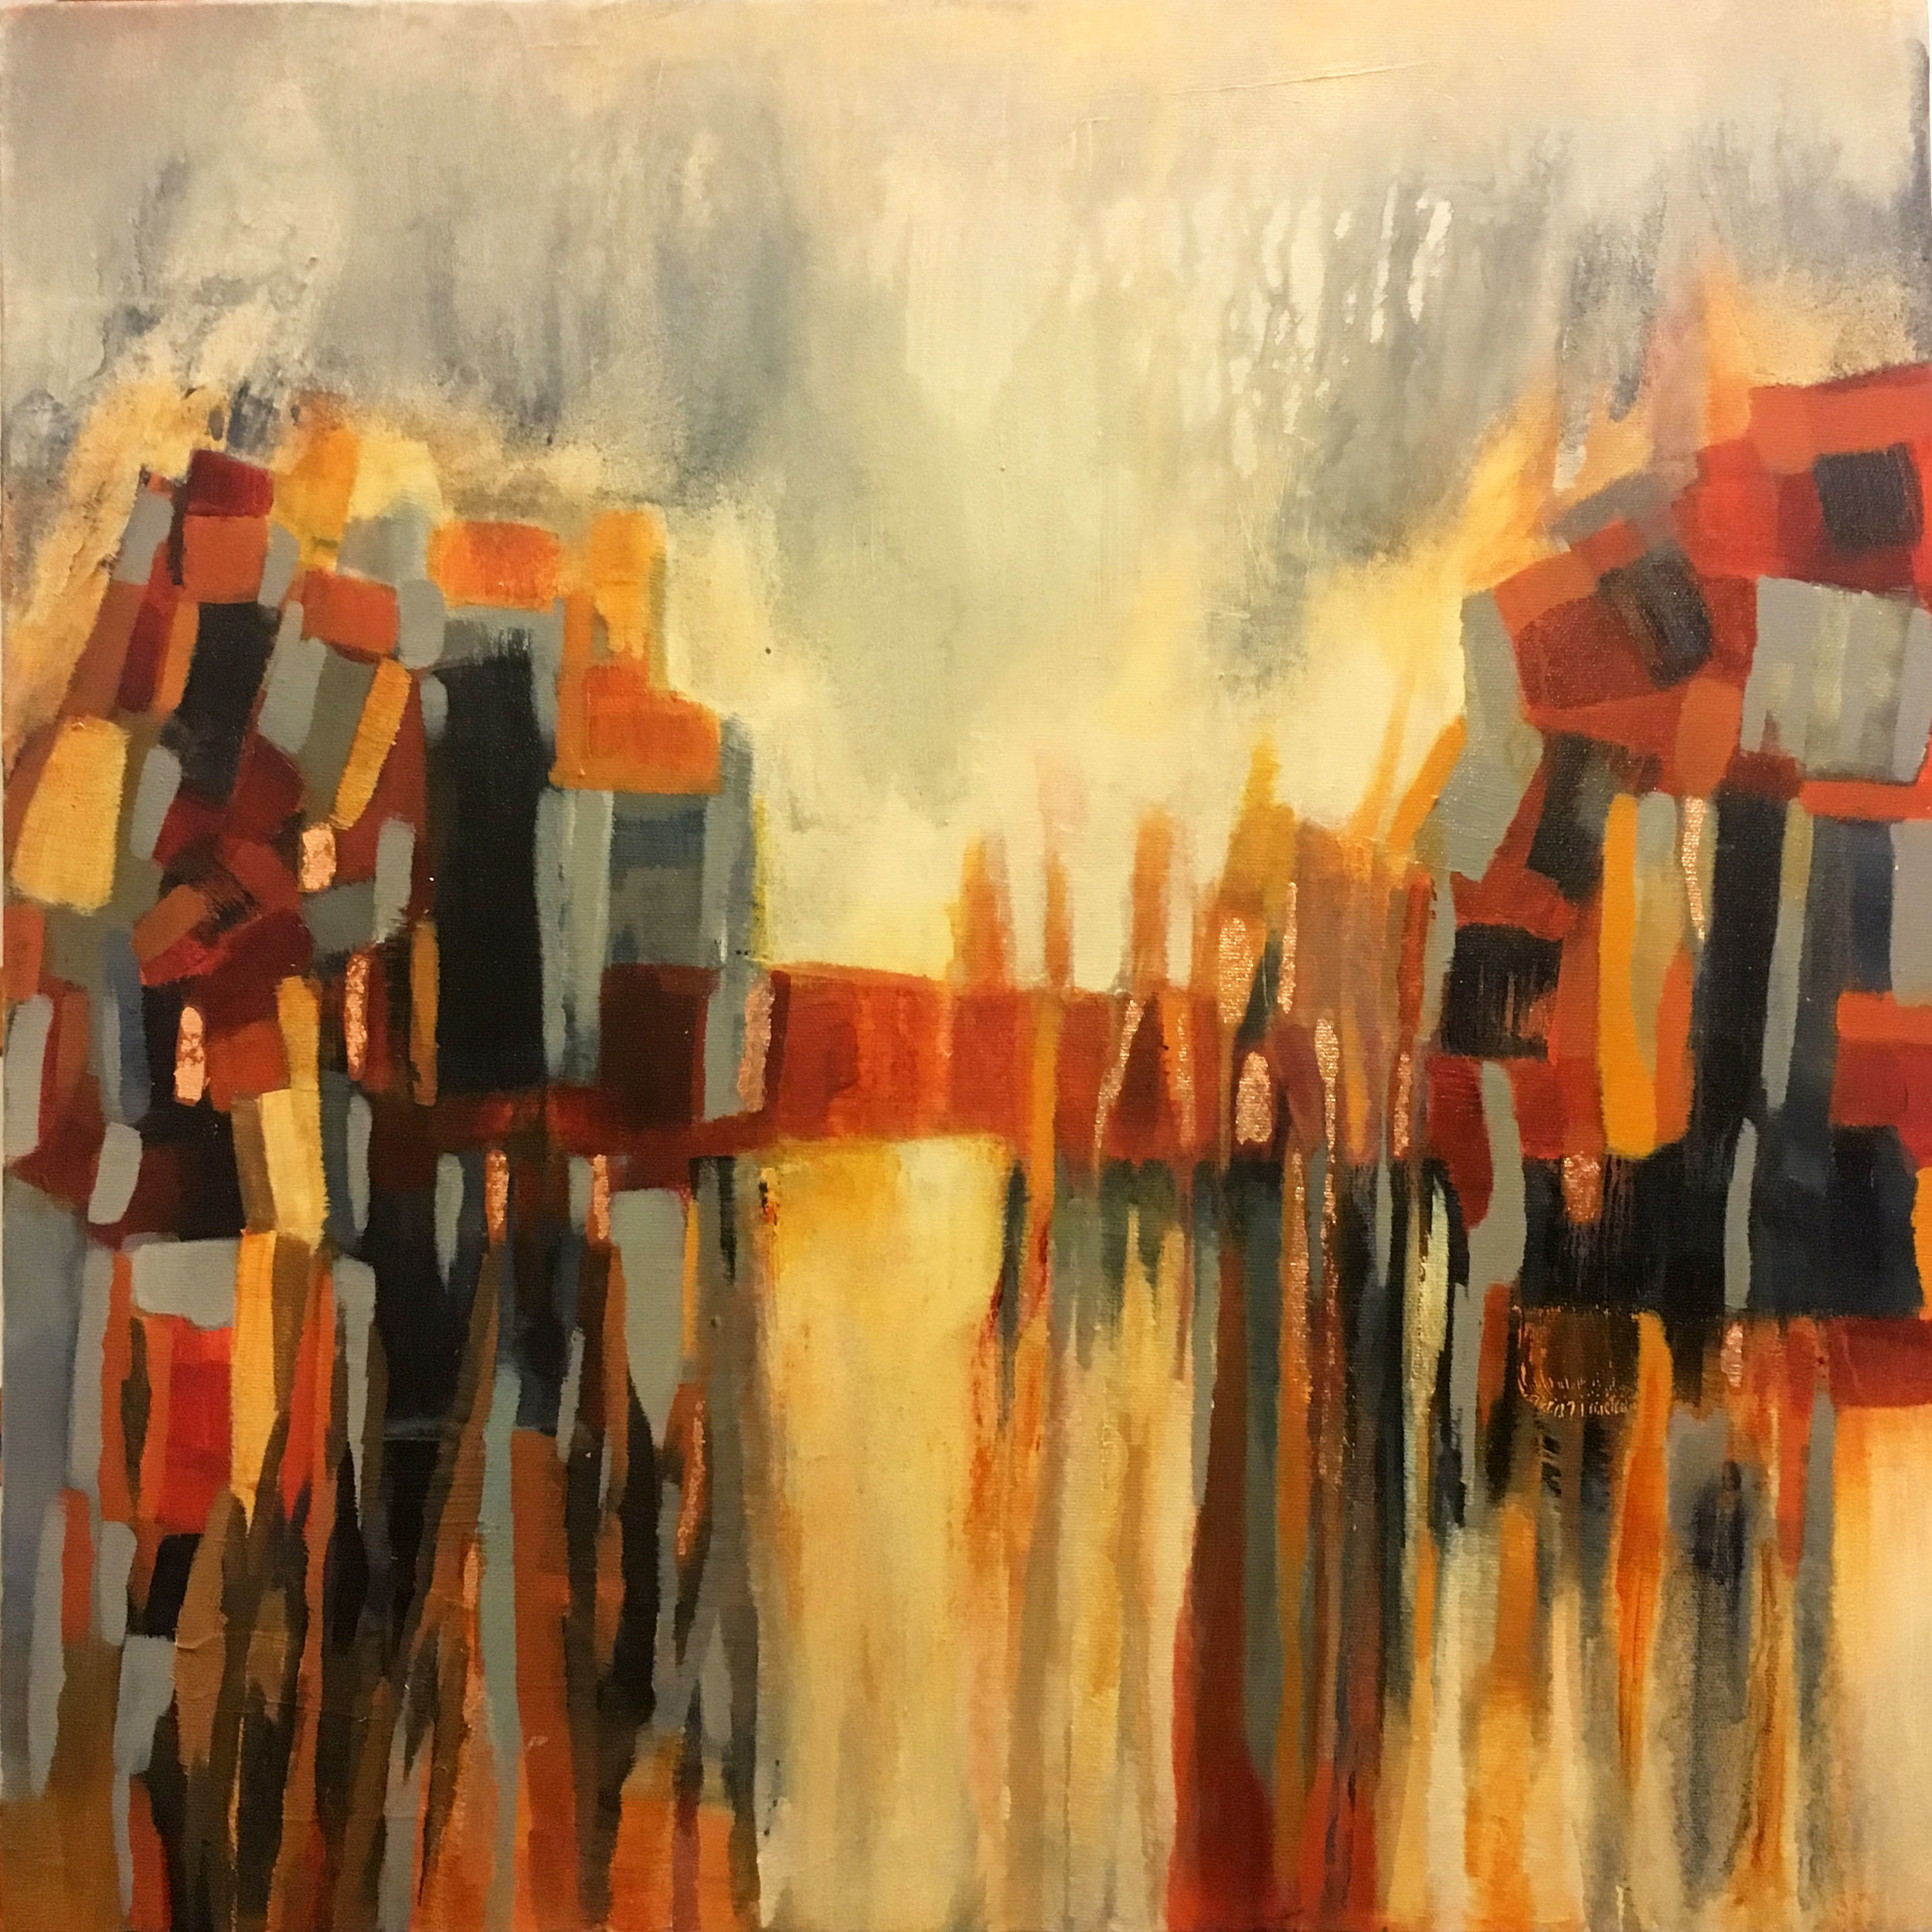 Descending - 20 x 20 Acrylic, Mixed Media and Copper Leaf on Canvas